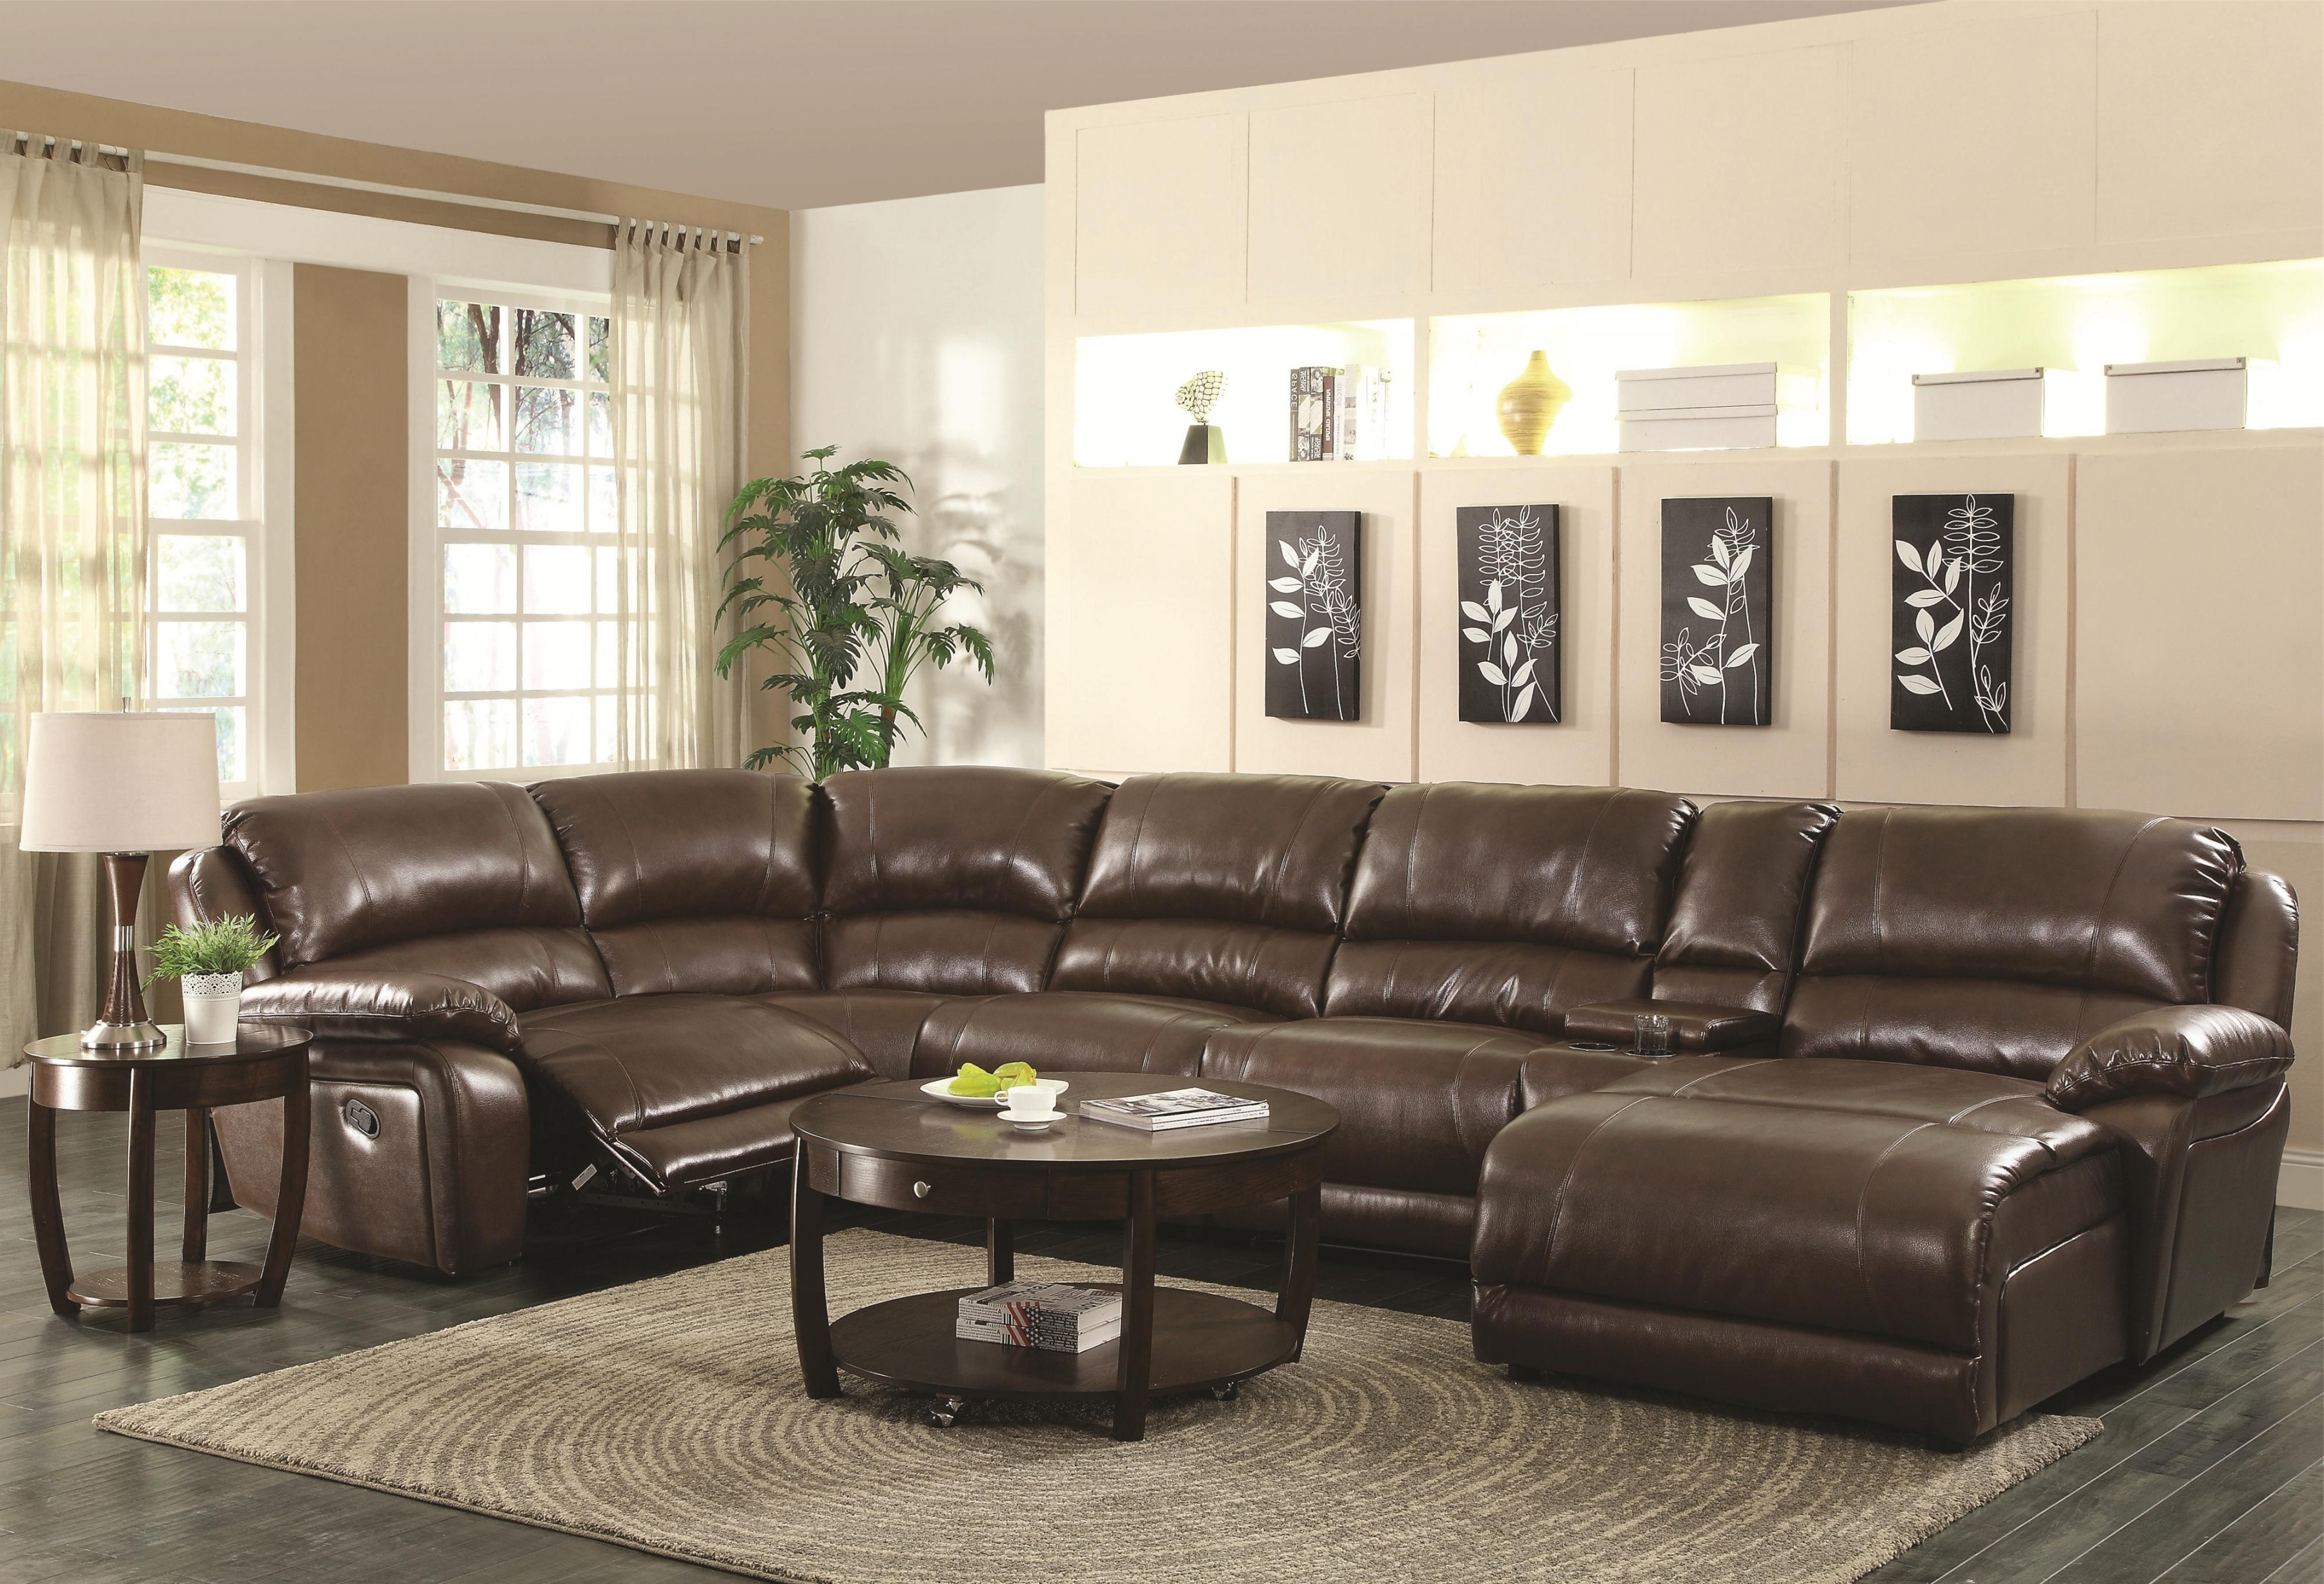 Best And Newest Home : Elegant Sectional Sofas With Recliners And Chaise Home In Elegant Sectional Sofas (View 3 of 15)